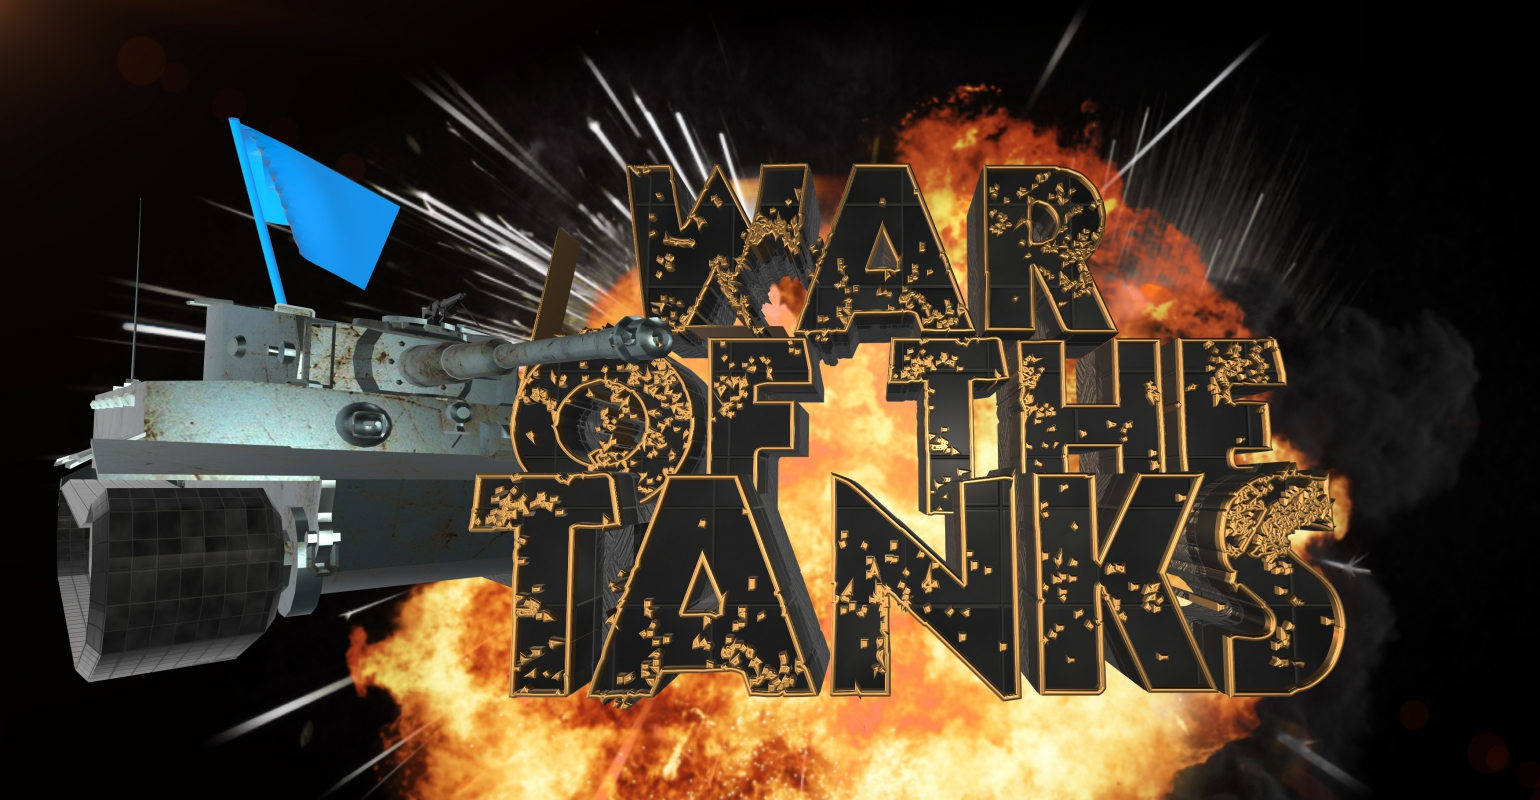 War of the tanks - Logboek 01